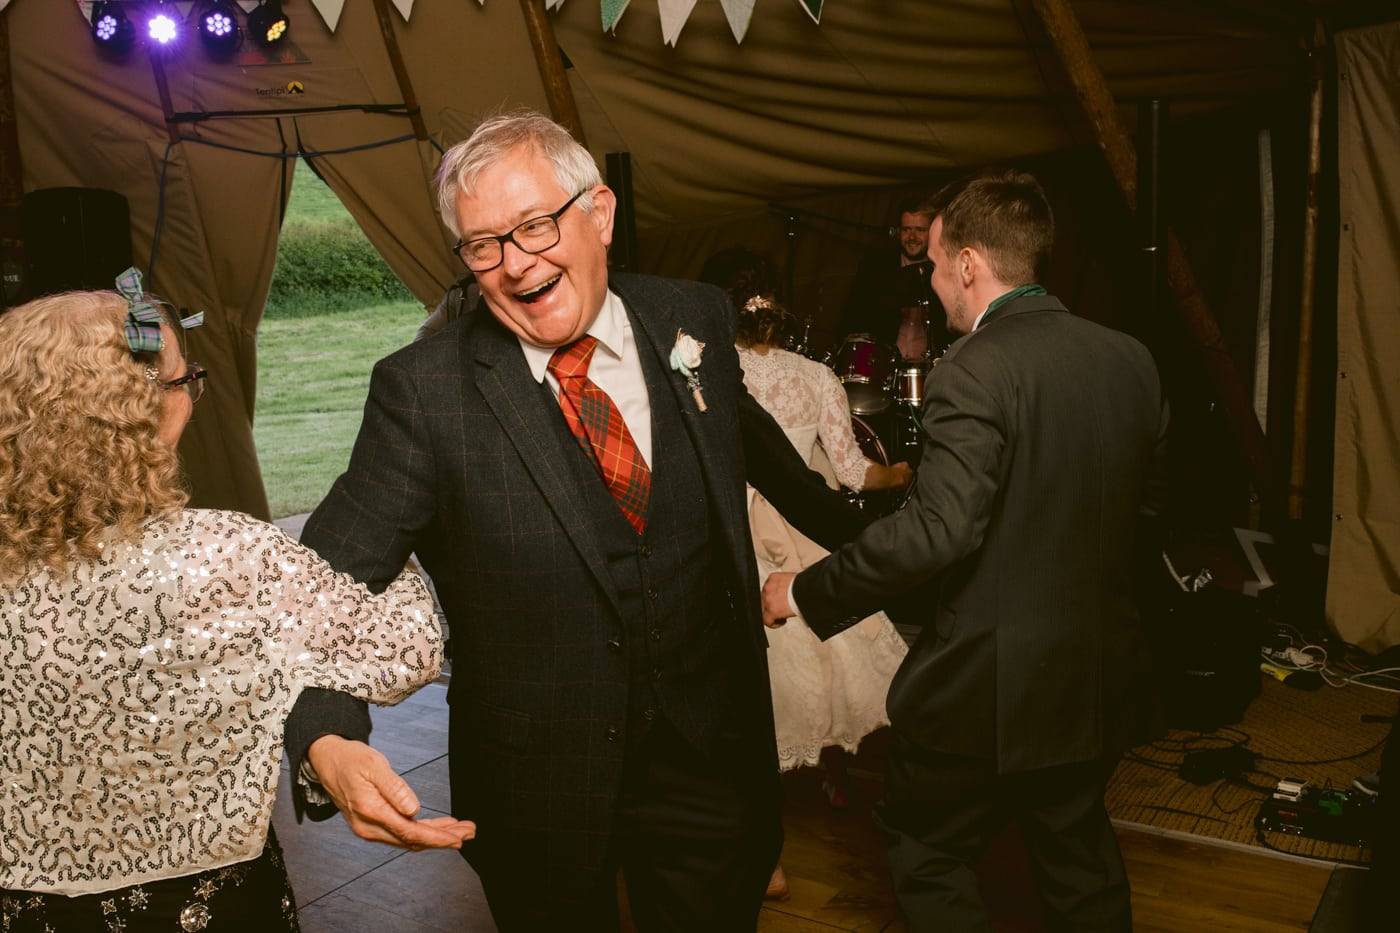 Alternative Dancing in Tipi Tent of Guests